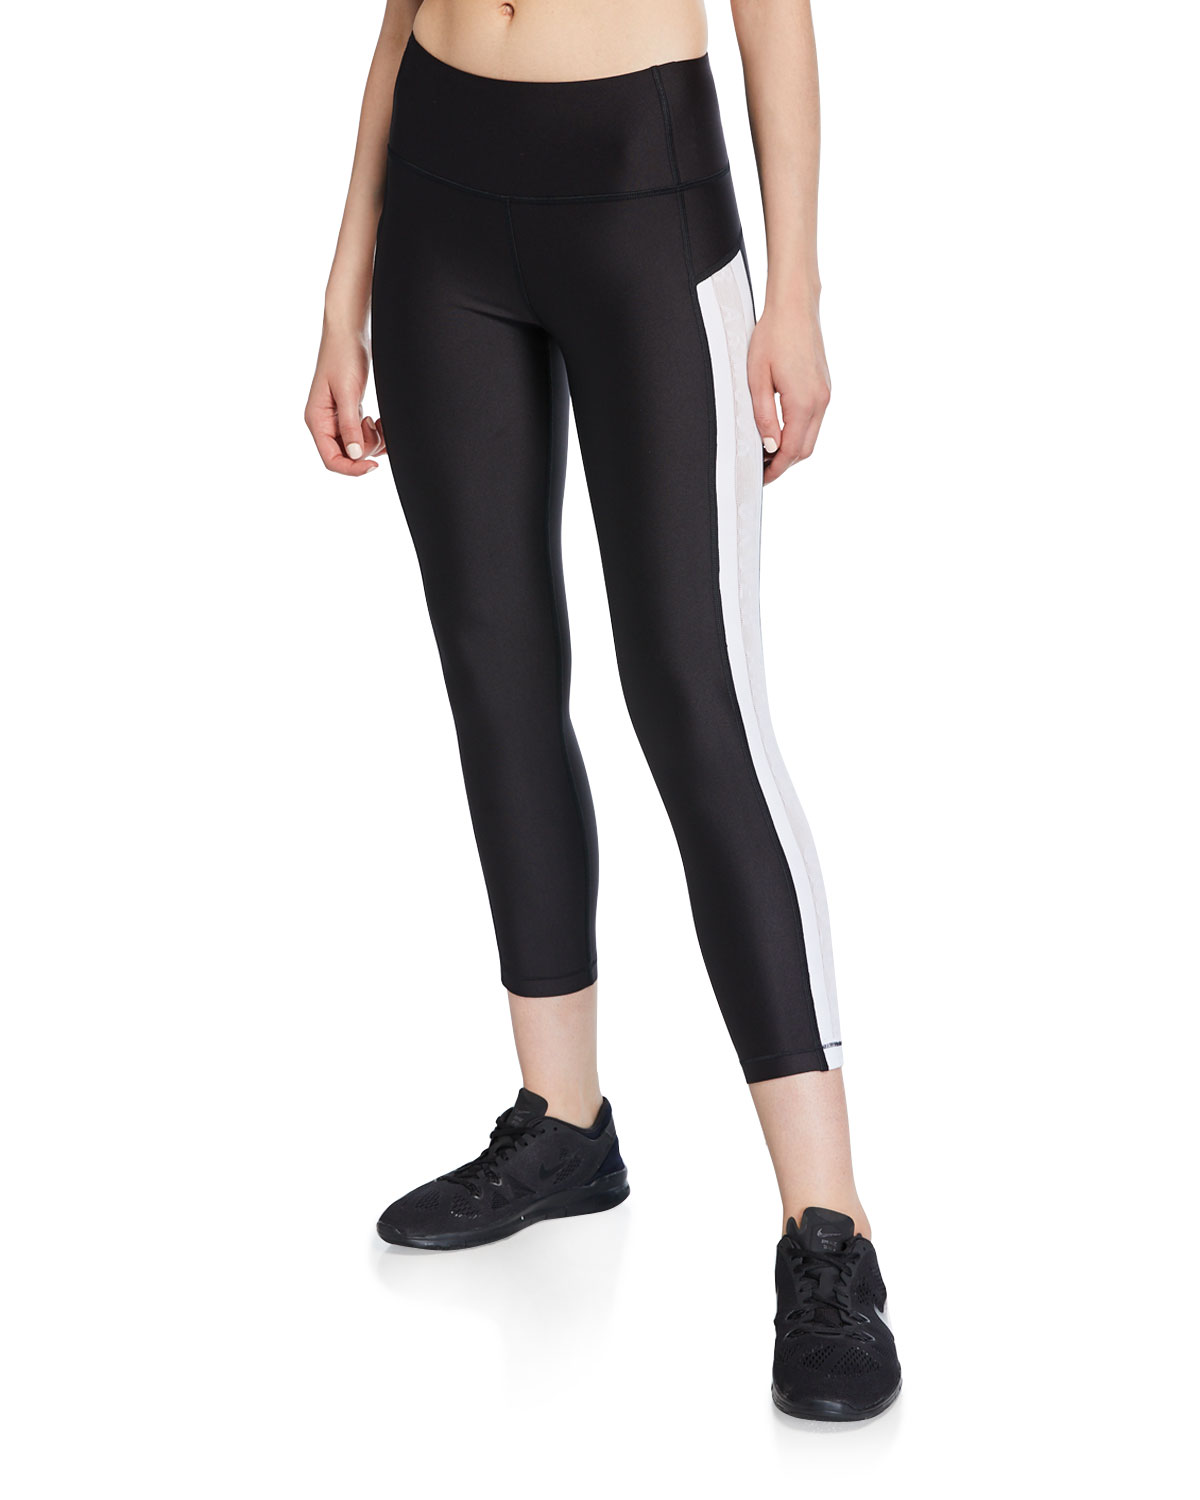 6cbd730b49d9d Under Armour Heatgear Armour Ankle Crop Branded Leggings In Black/White